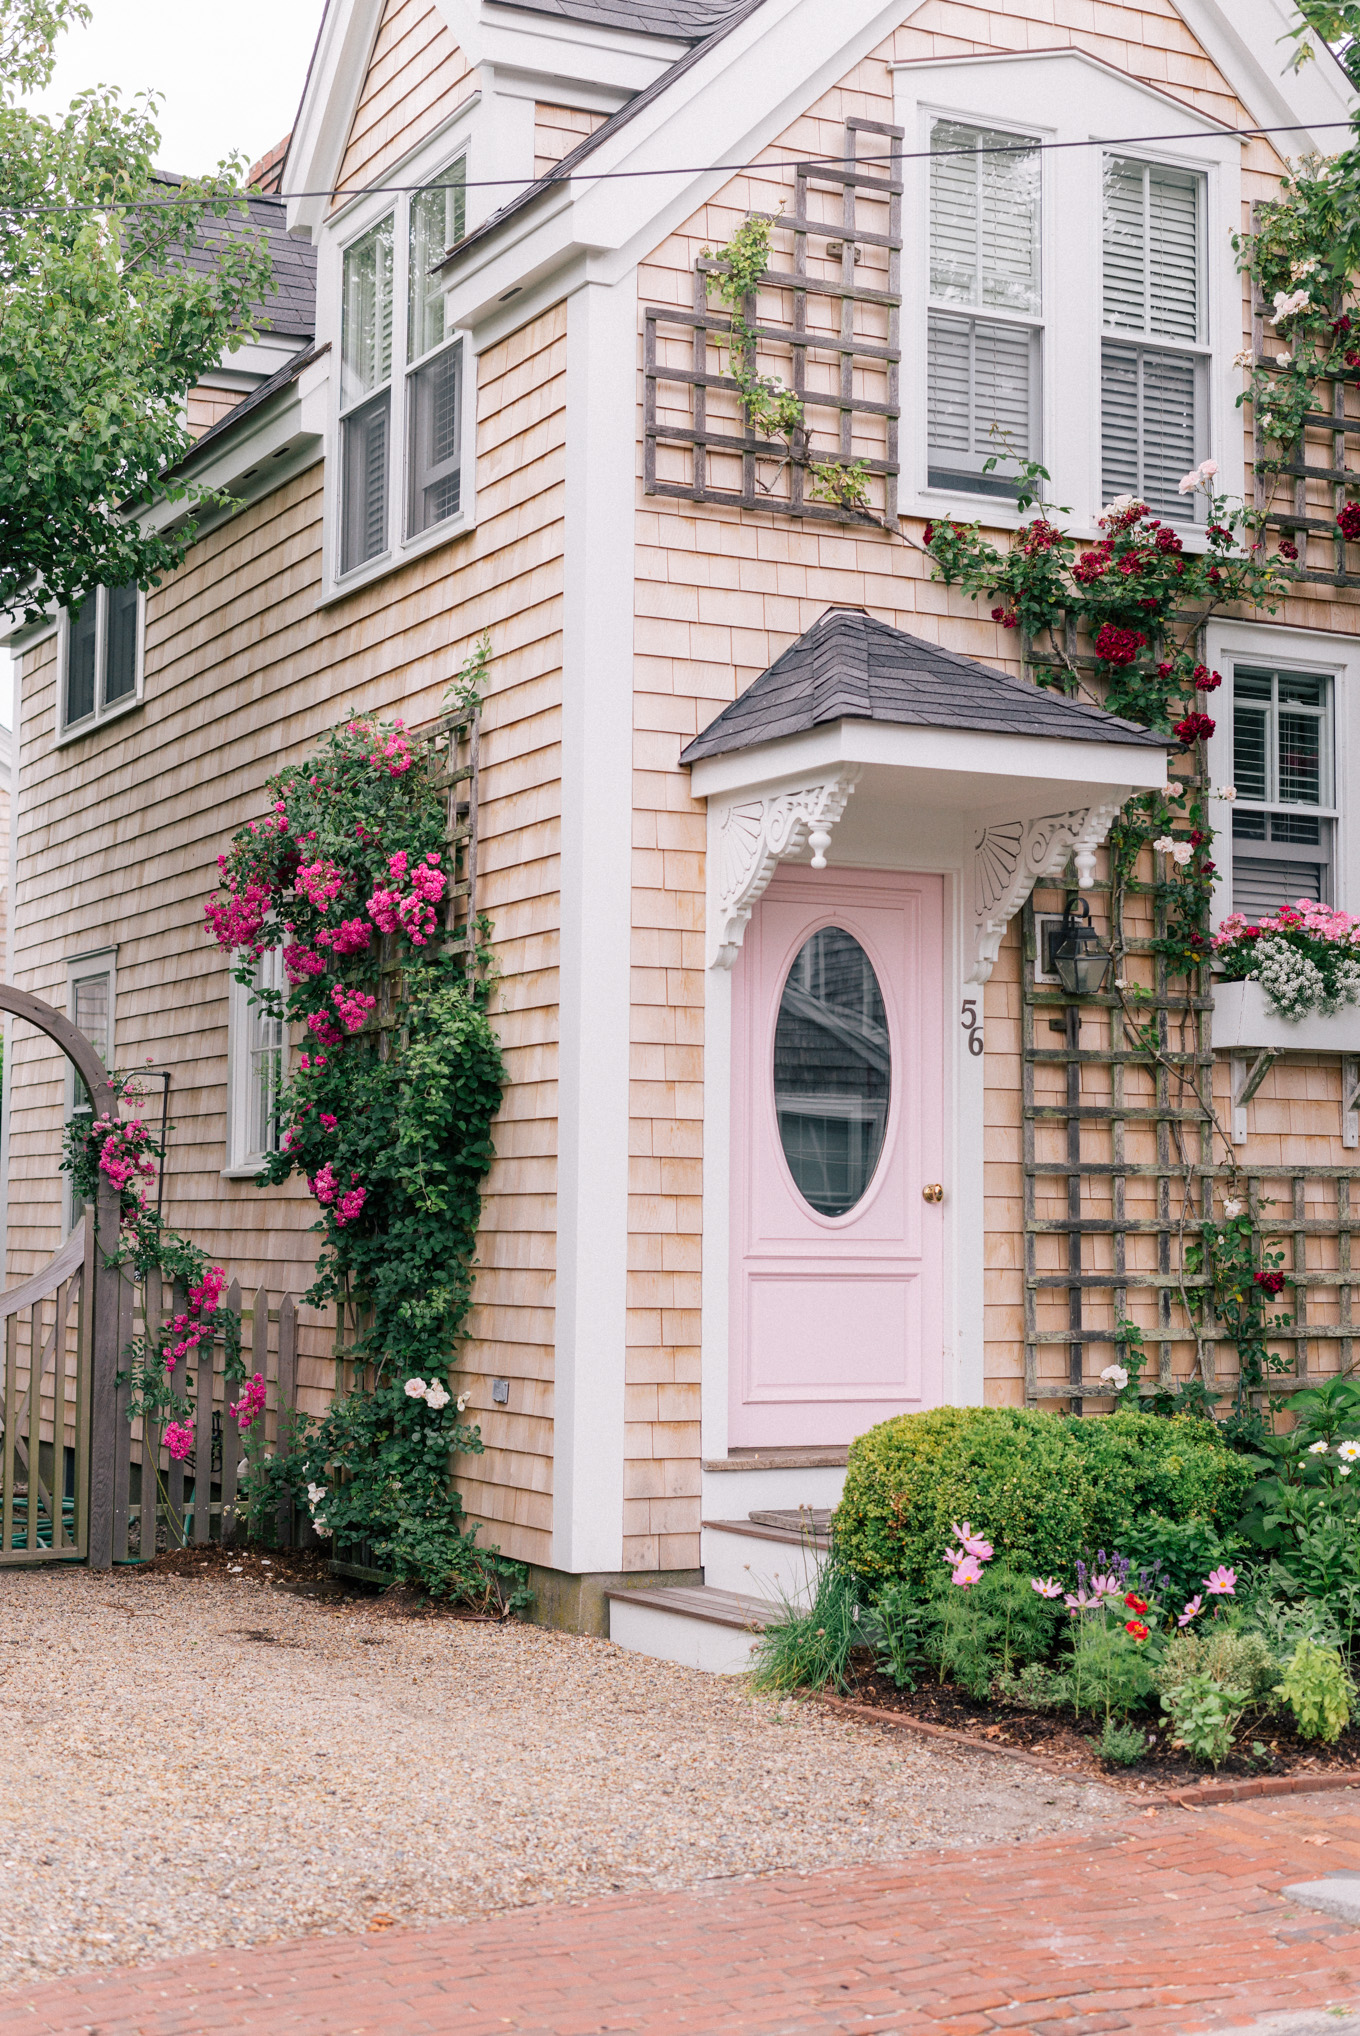 gmg-a-week-on-nantucket-part-two-1008510